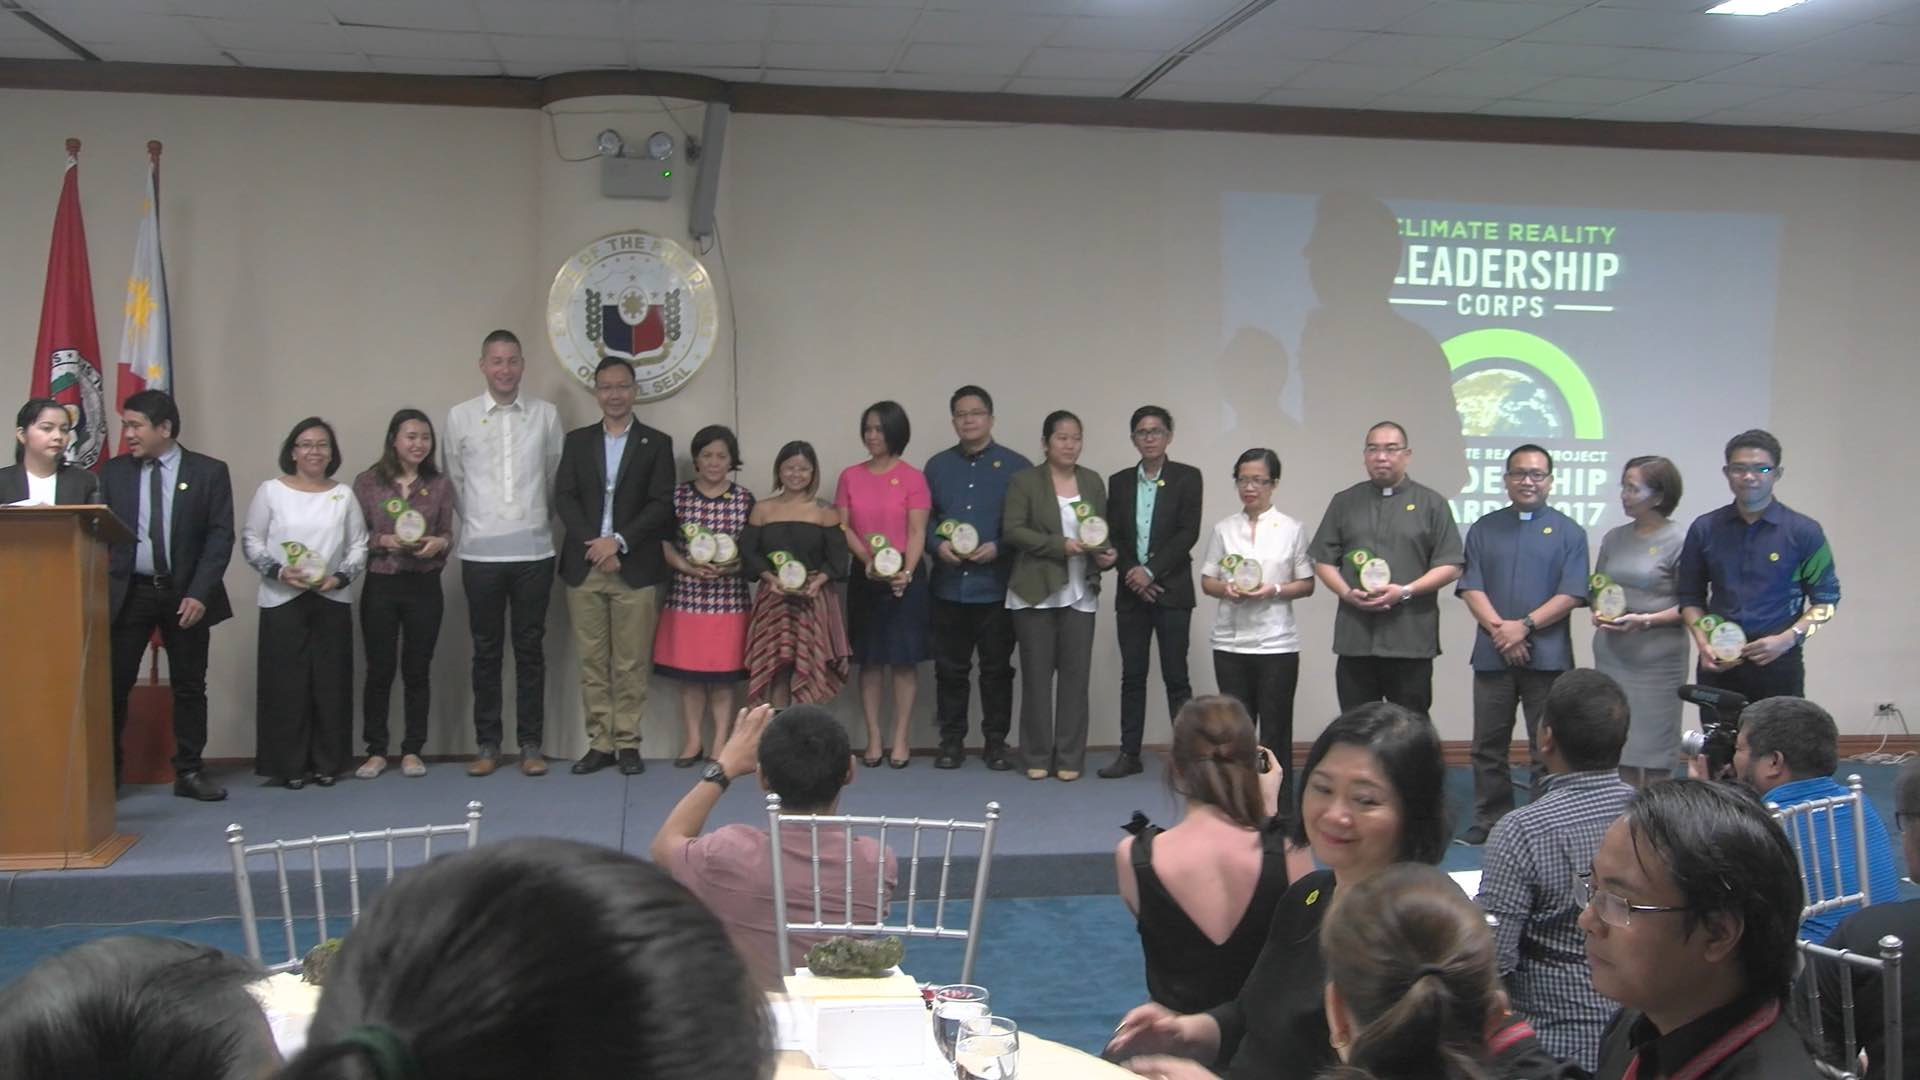 COLLECTIVE CLIMATE LEADERSHIP. Recipients of the Allen S. Quimpo Collective Climate Leadership Memorial Award